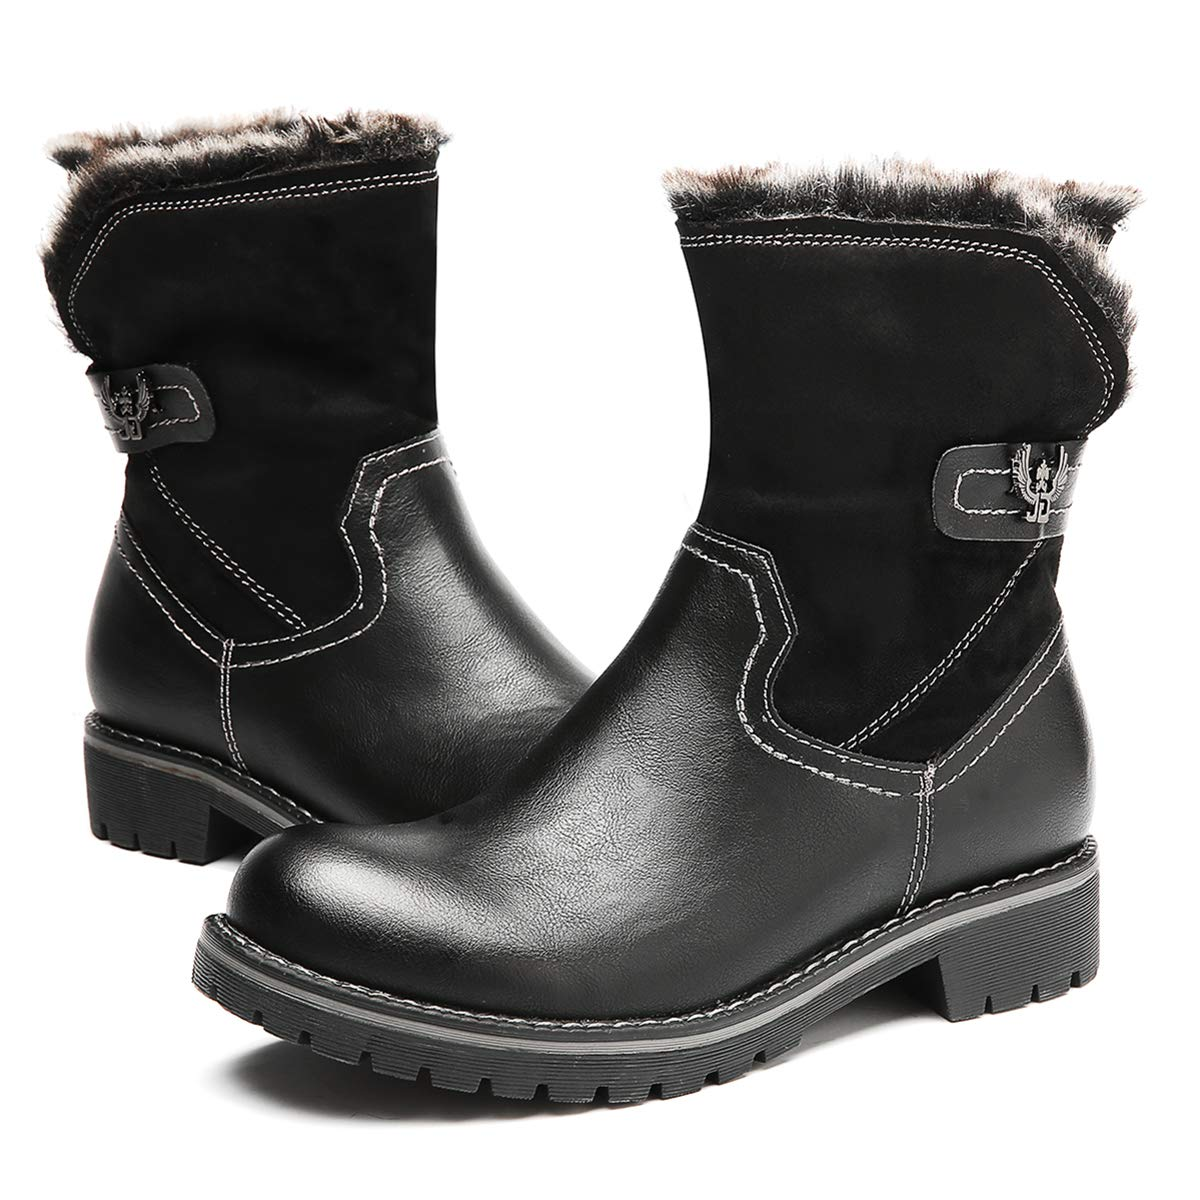 f0046faf75024 gracosy Winter Snow Boots Outdoor Fur Lined Warm Ankle Booties Waterproof  Slip on Combat Boots for Women